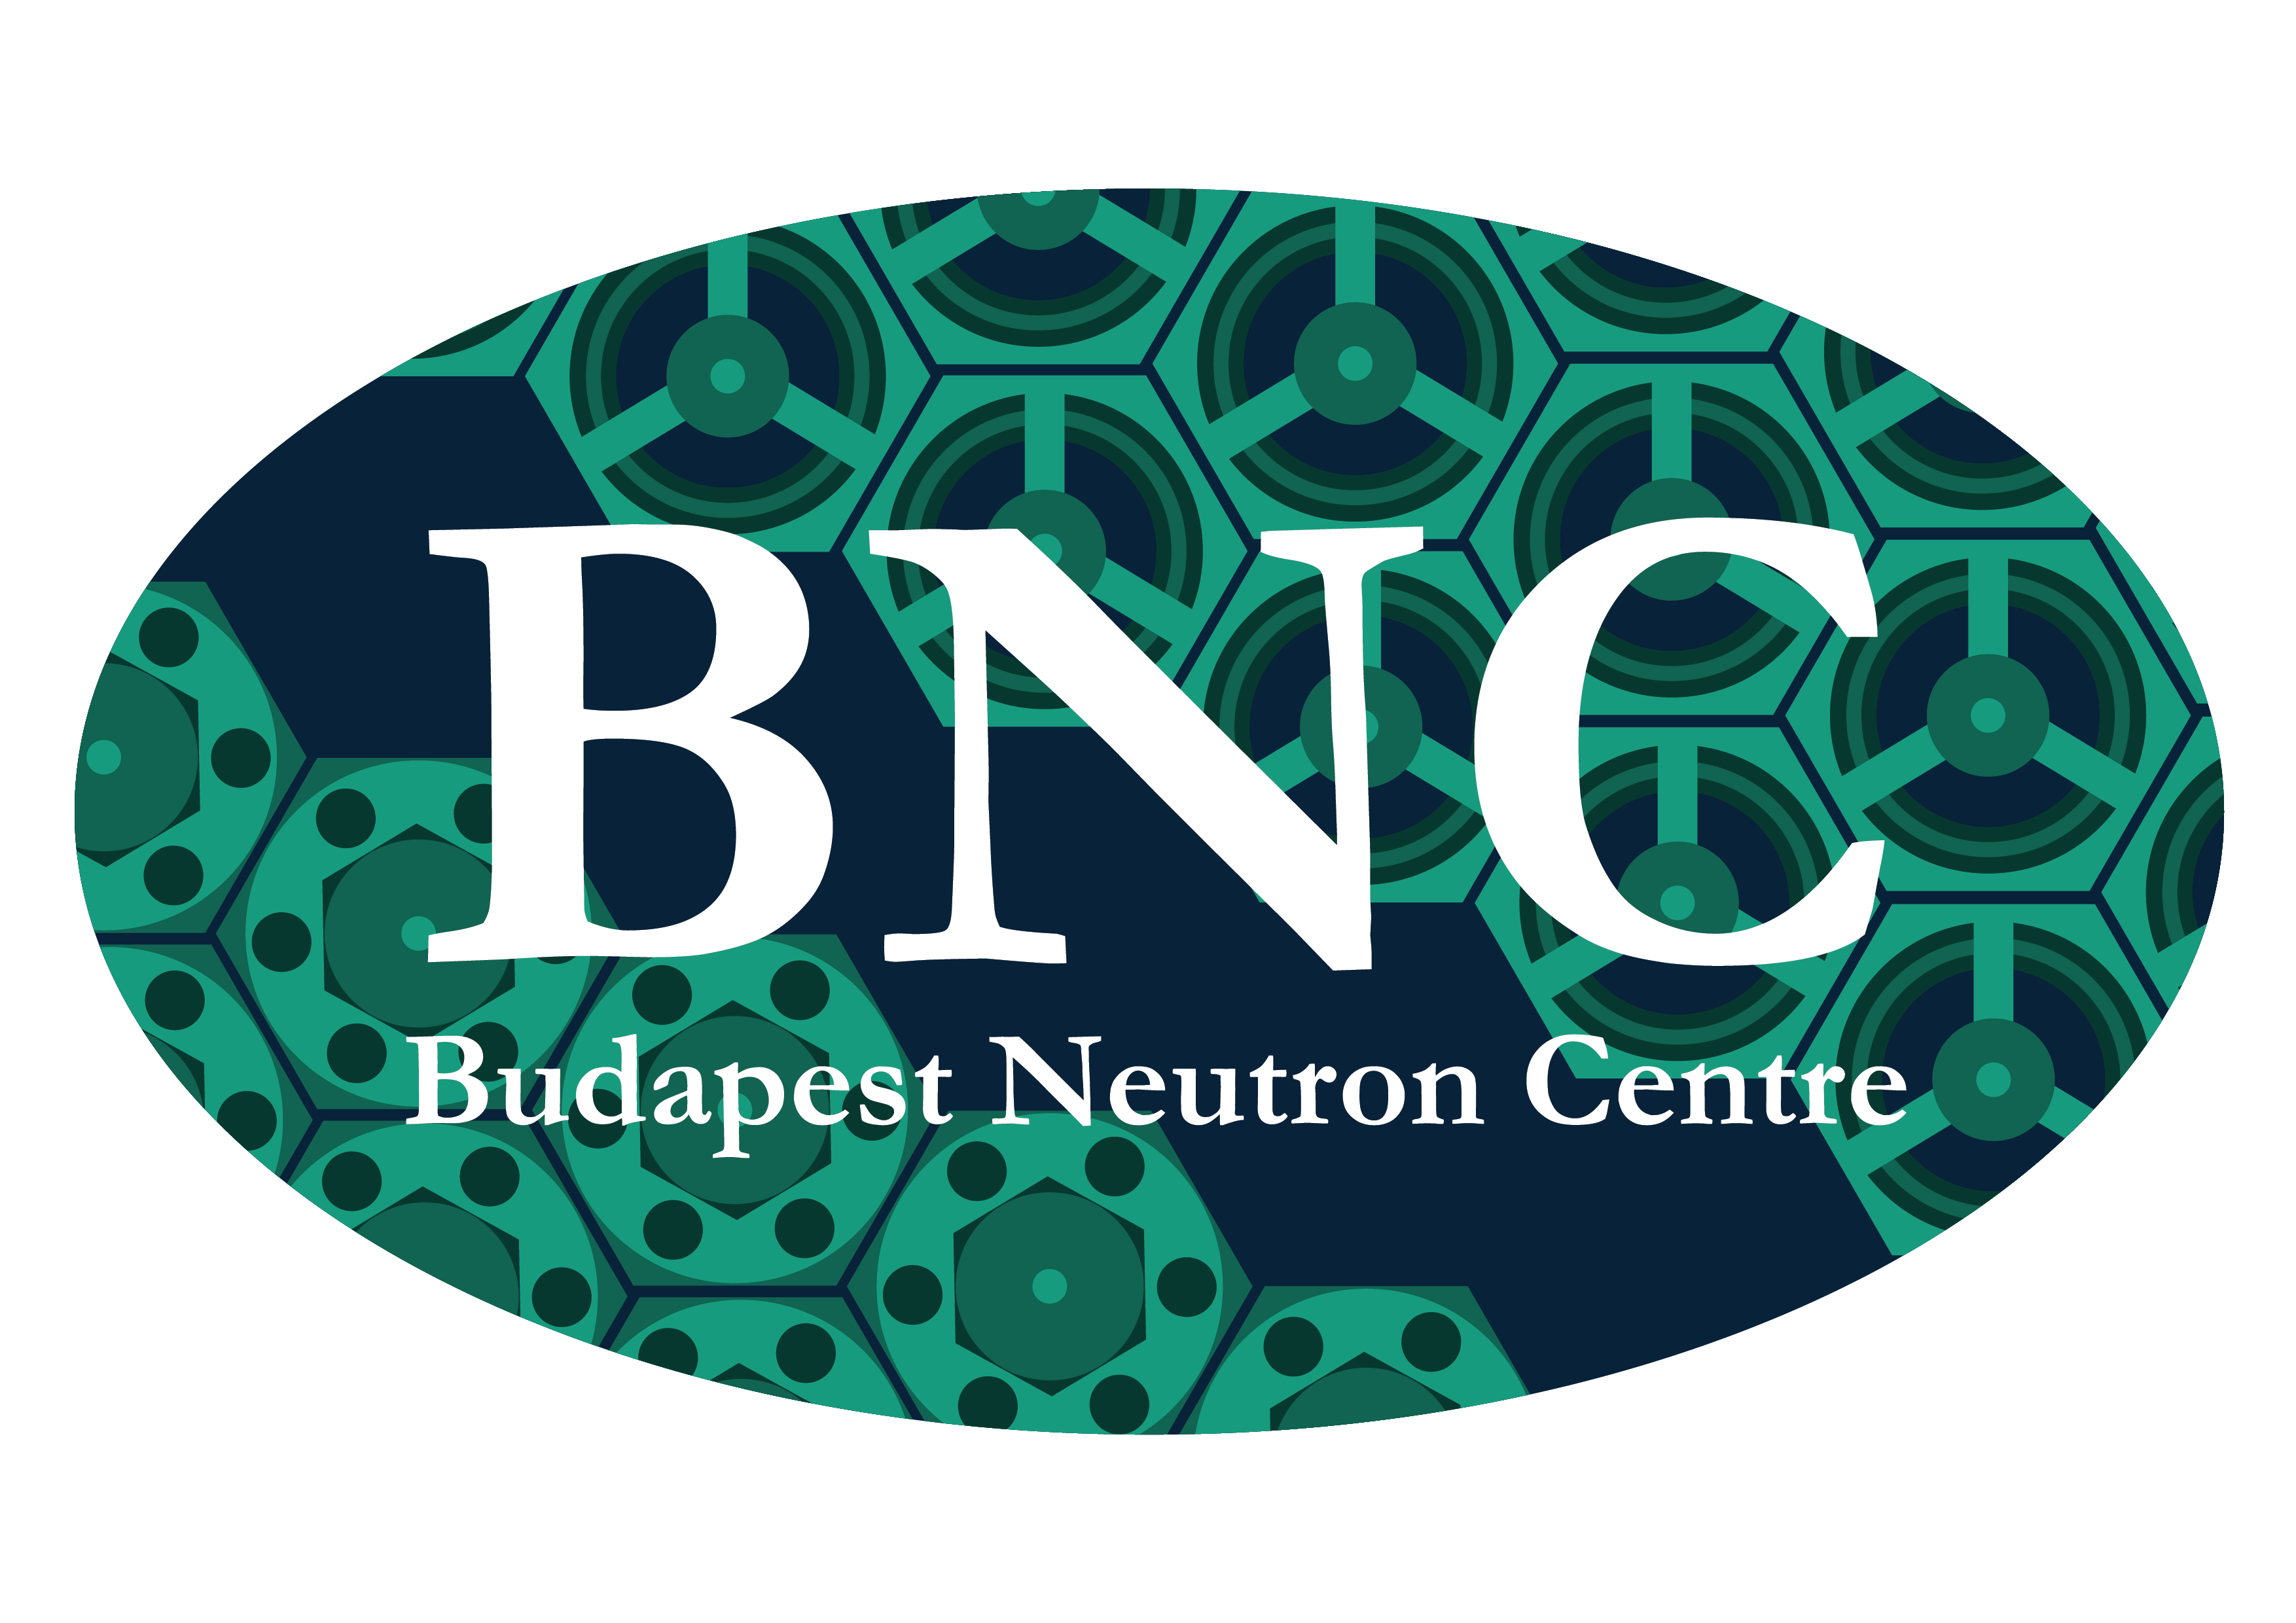 Budapest Neutron Centre  »  -  60 years of research & innovation